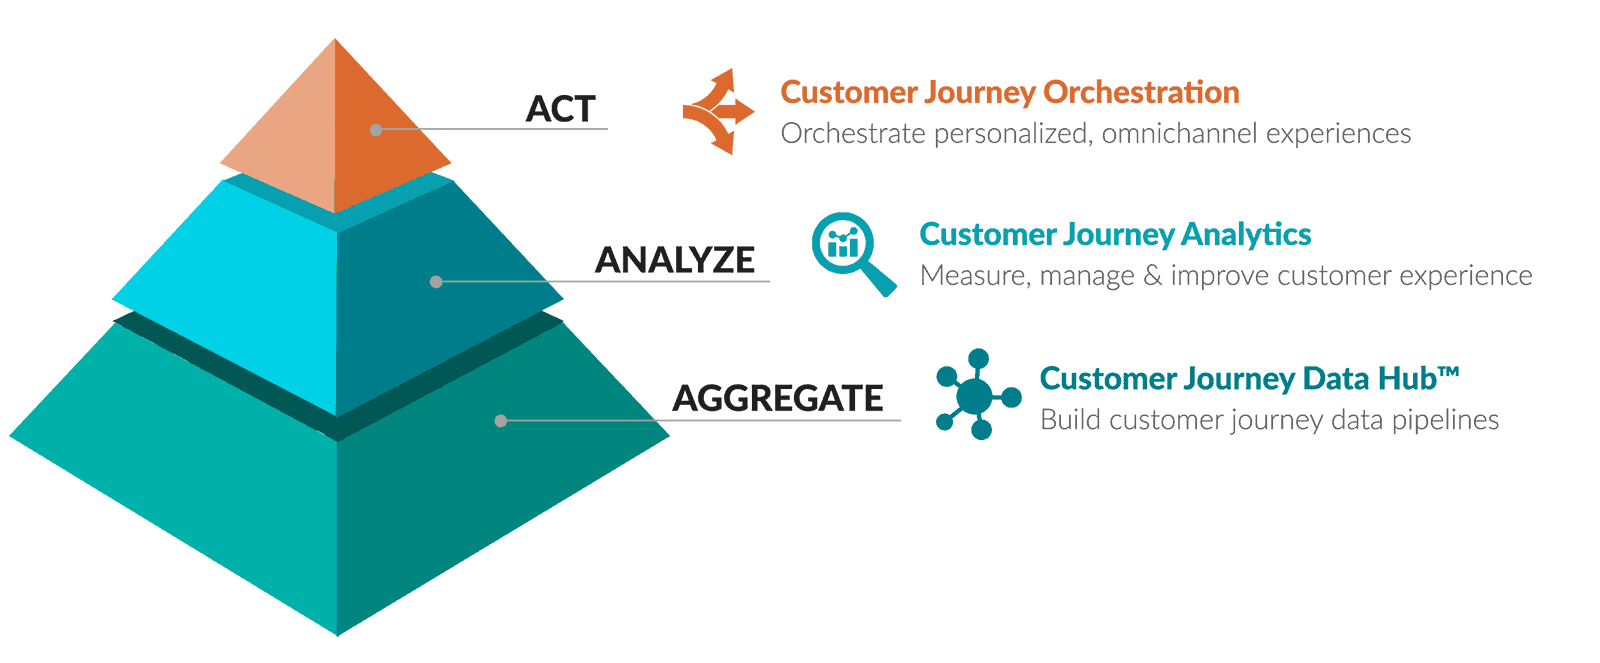 Pointillist's customer journey management software enables enterprises to aggregate, analyze & act on customer journey data